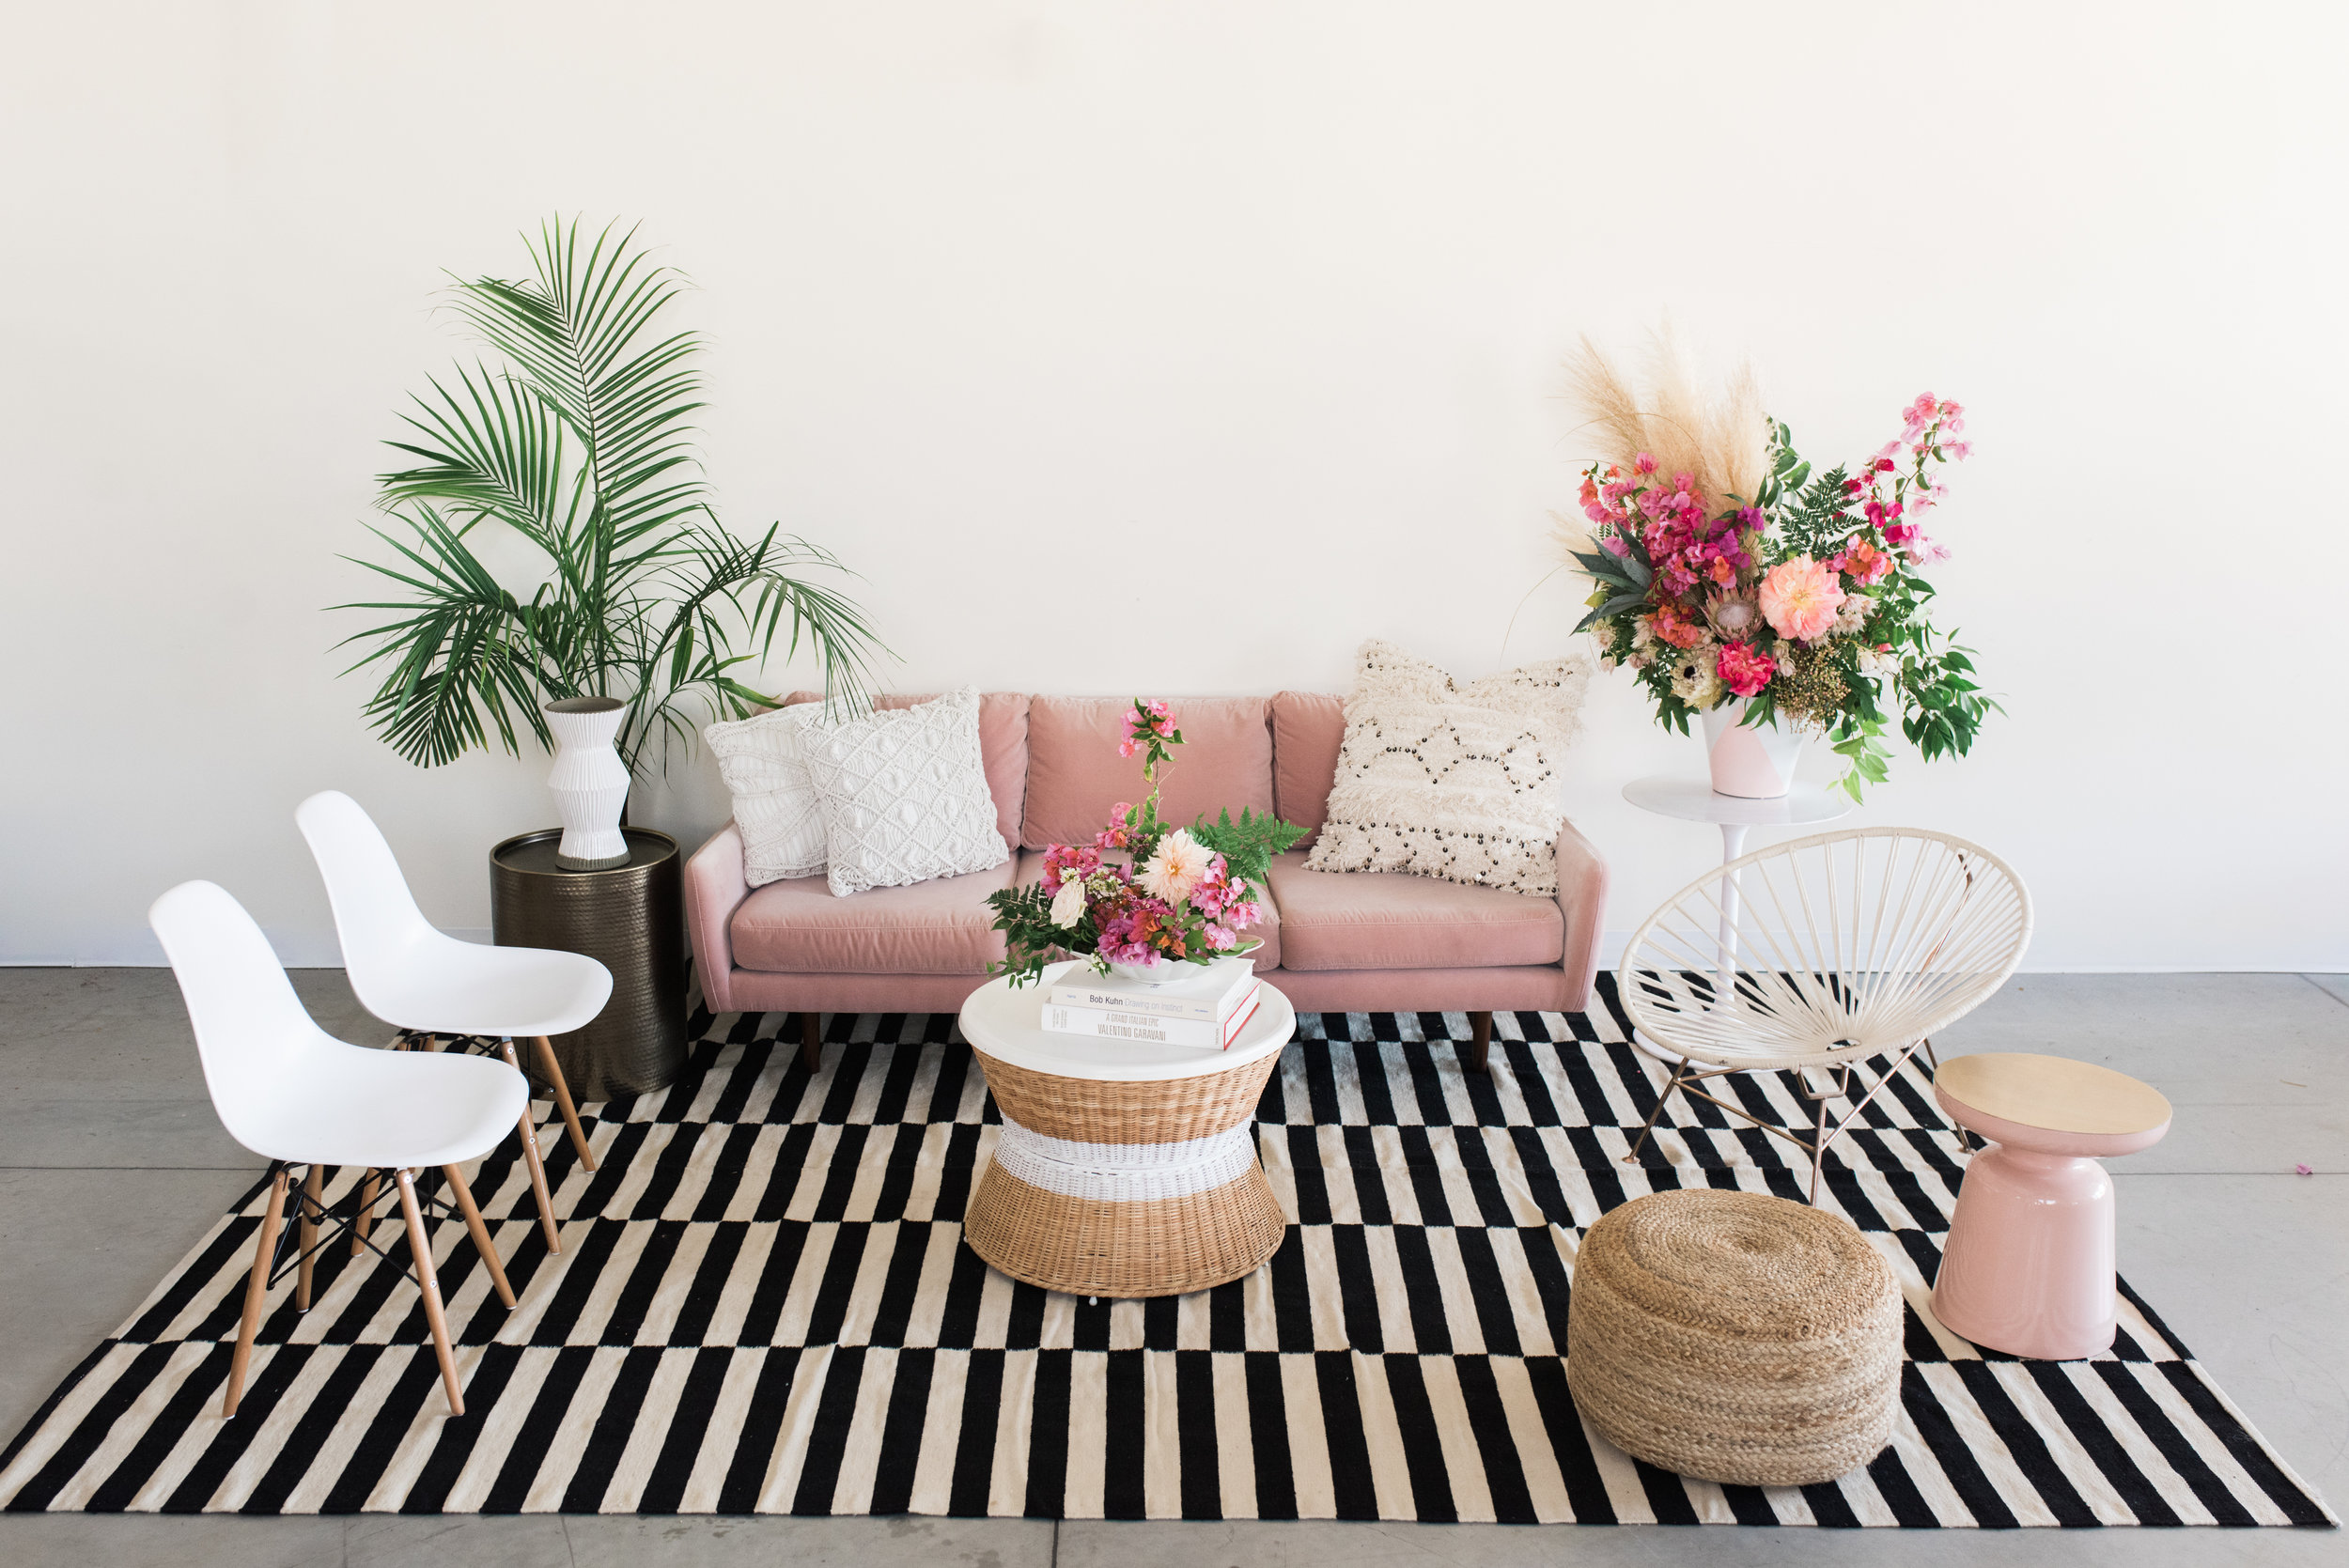 Furniture with pillows, rugs and poufs: $840  Furniture only: $555  ***Potted plants, vases of flowers, bowls of fruit and books are not included.